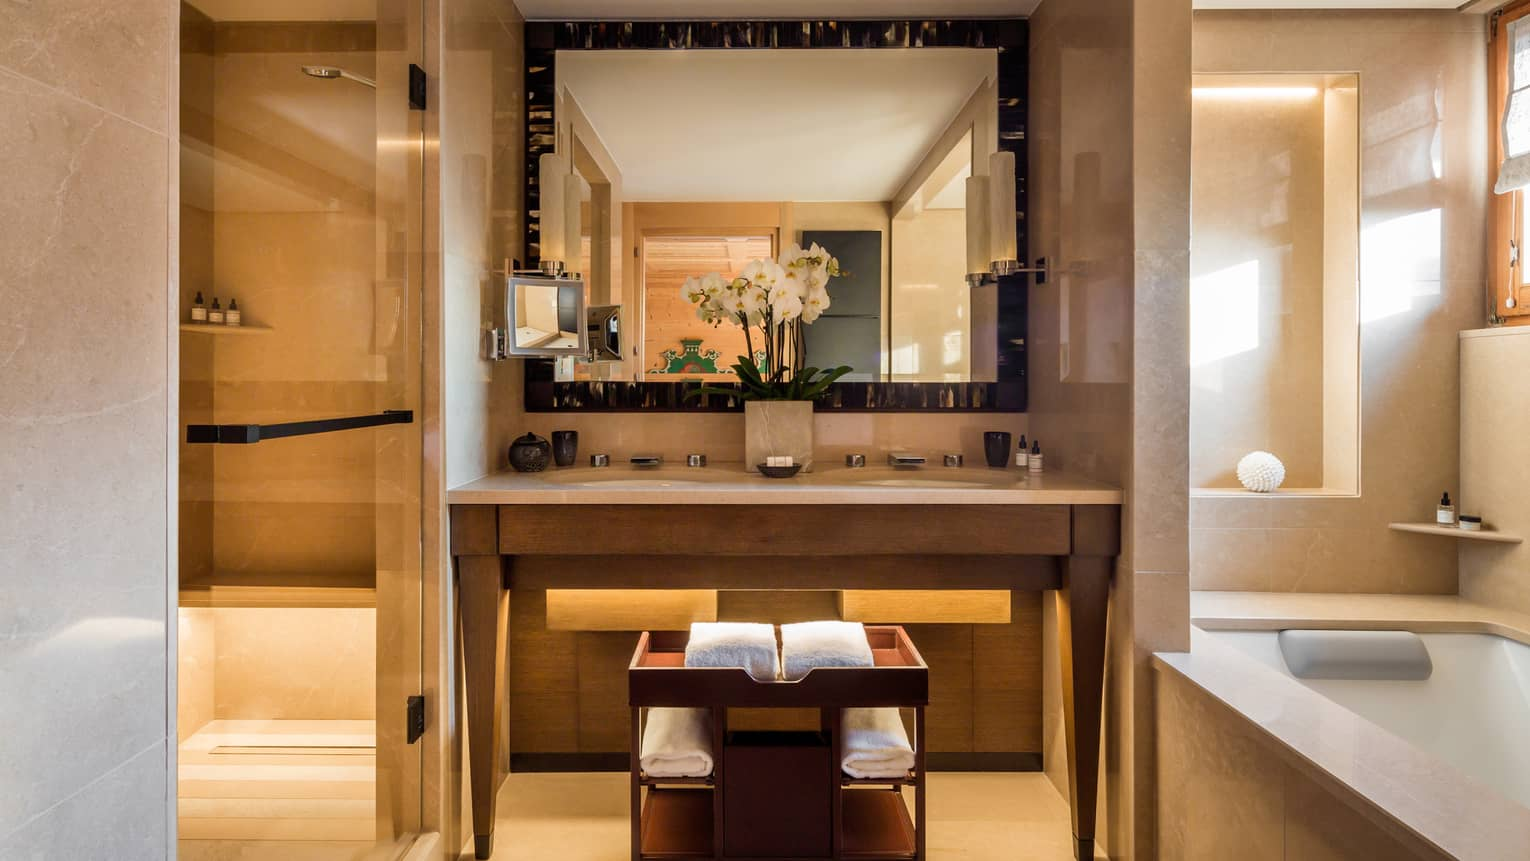 Modern with bathroom double sink vanity and mirror, orchids beside tile bath tub